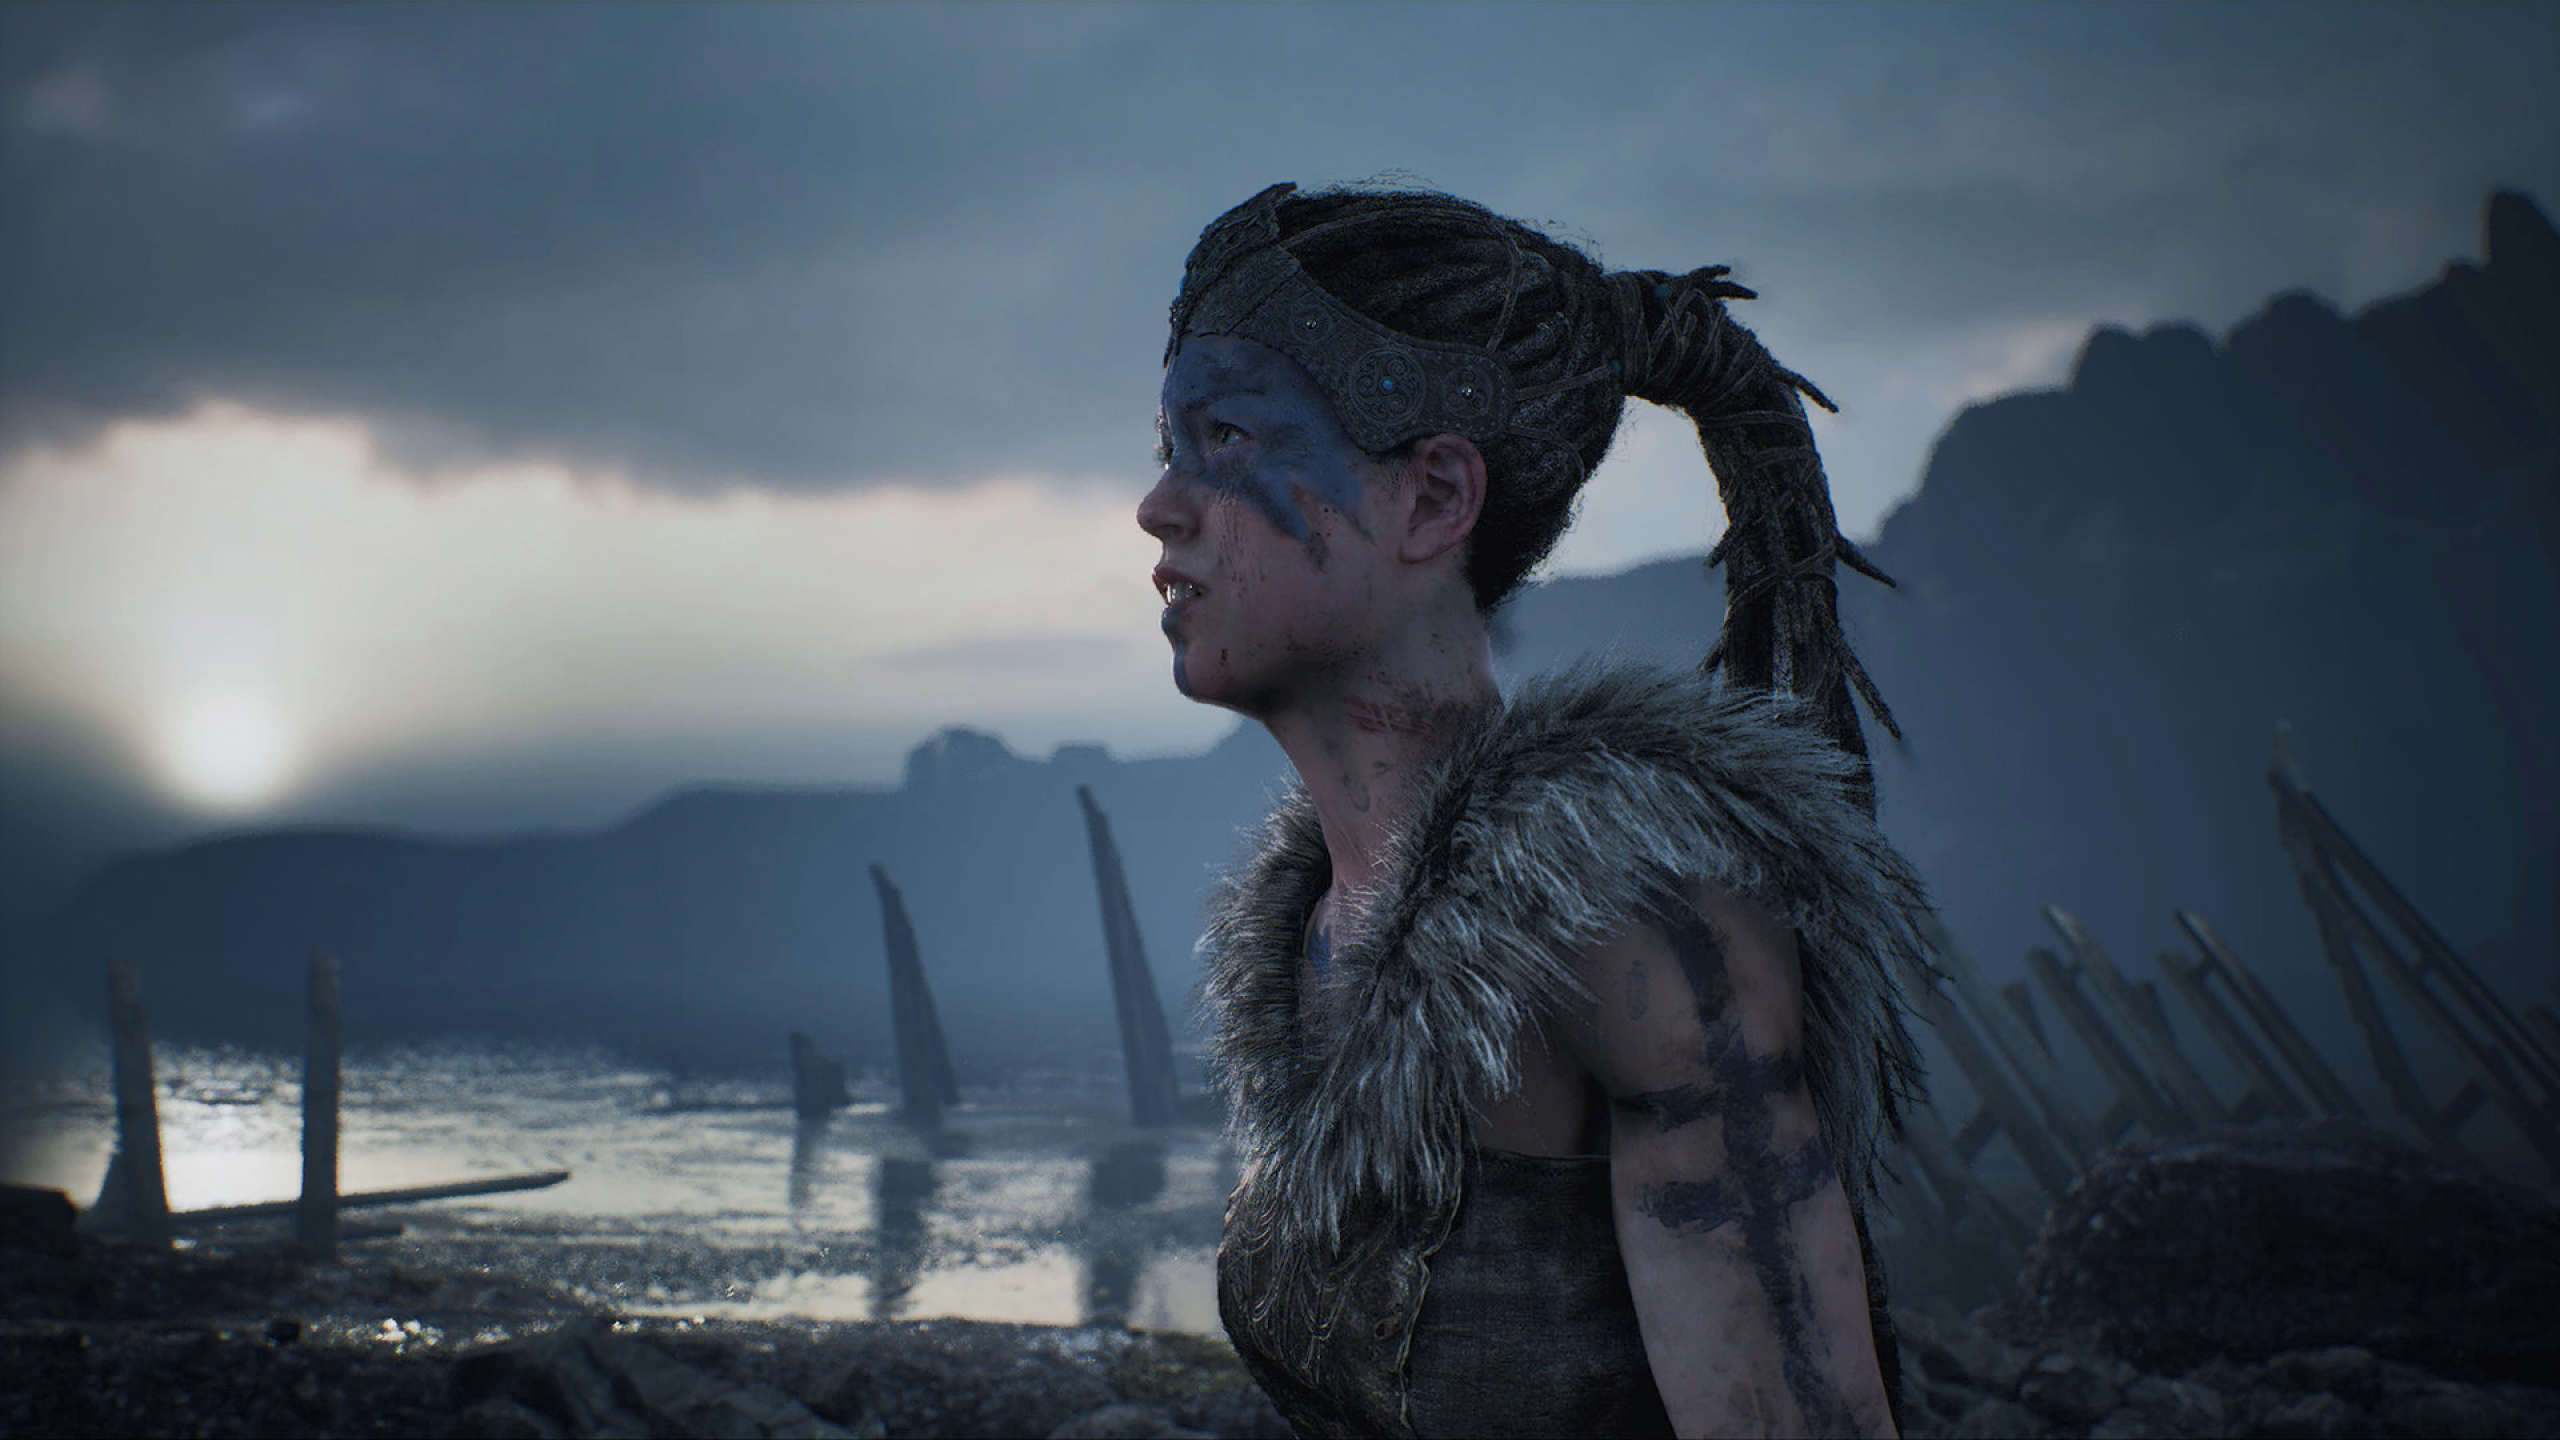 Download 2560x1440 Hellblade: Senua's Sacrifice Wallpapers for